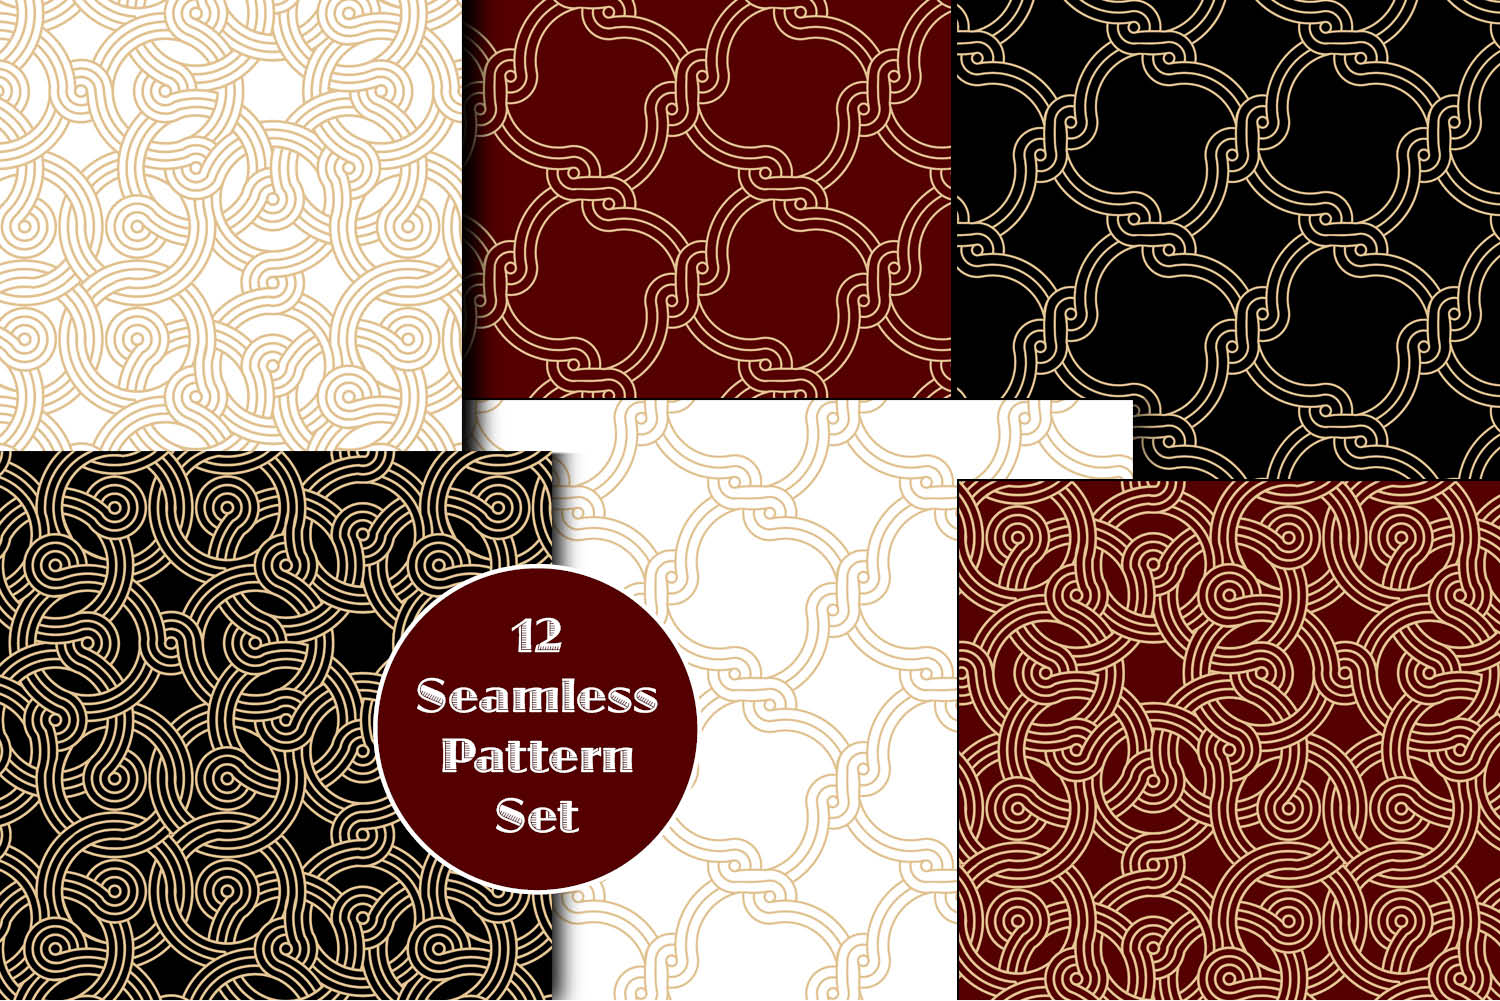 12 Seamless Pattern Set example image 2